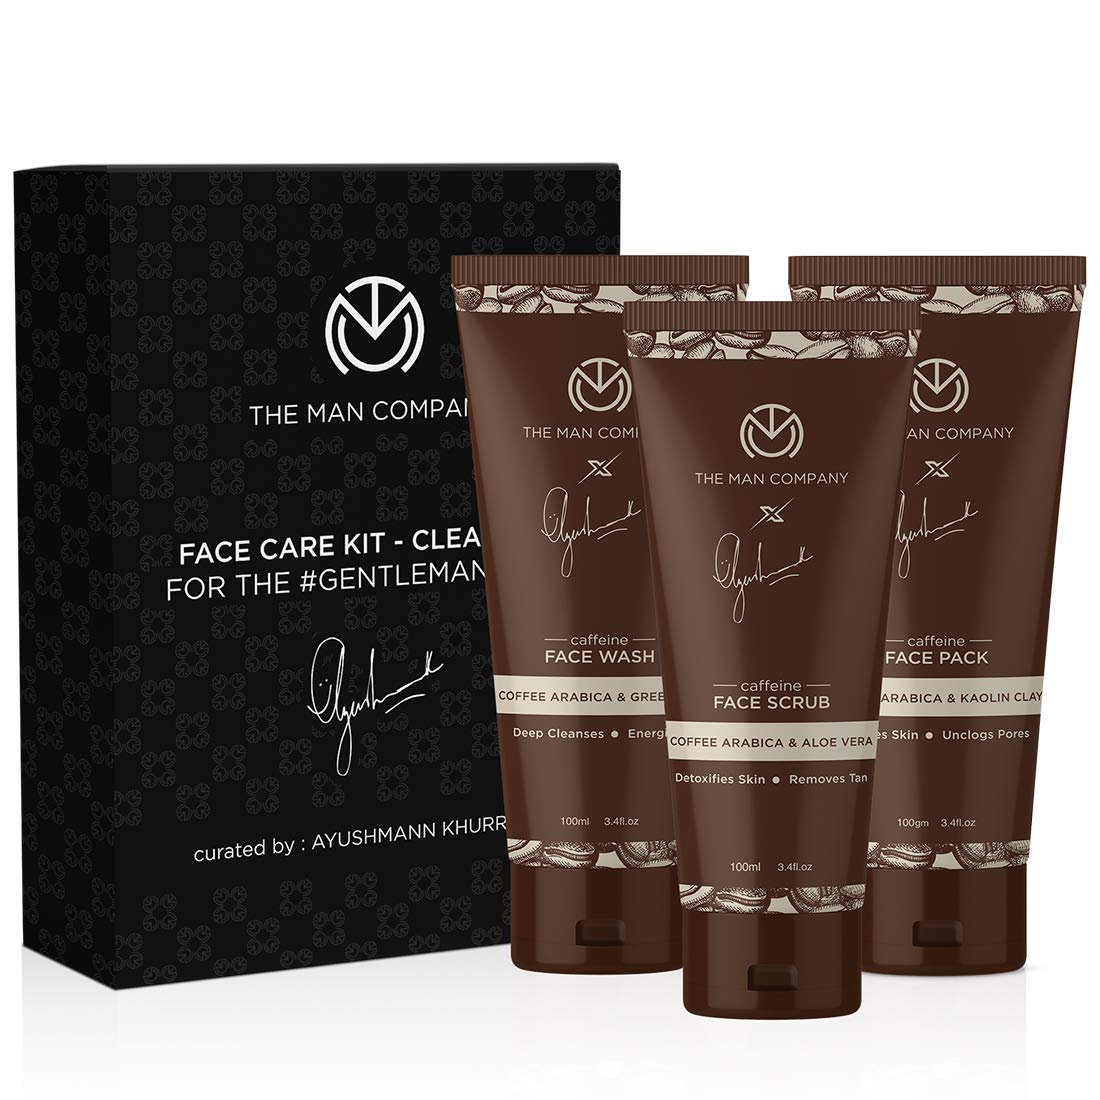 The Man Company Caffeine Cleansing Face Care Kit (Face Wash 100ml + Face Scrub 100ml + Face Pack 100ml